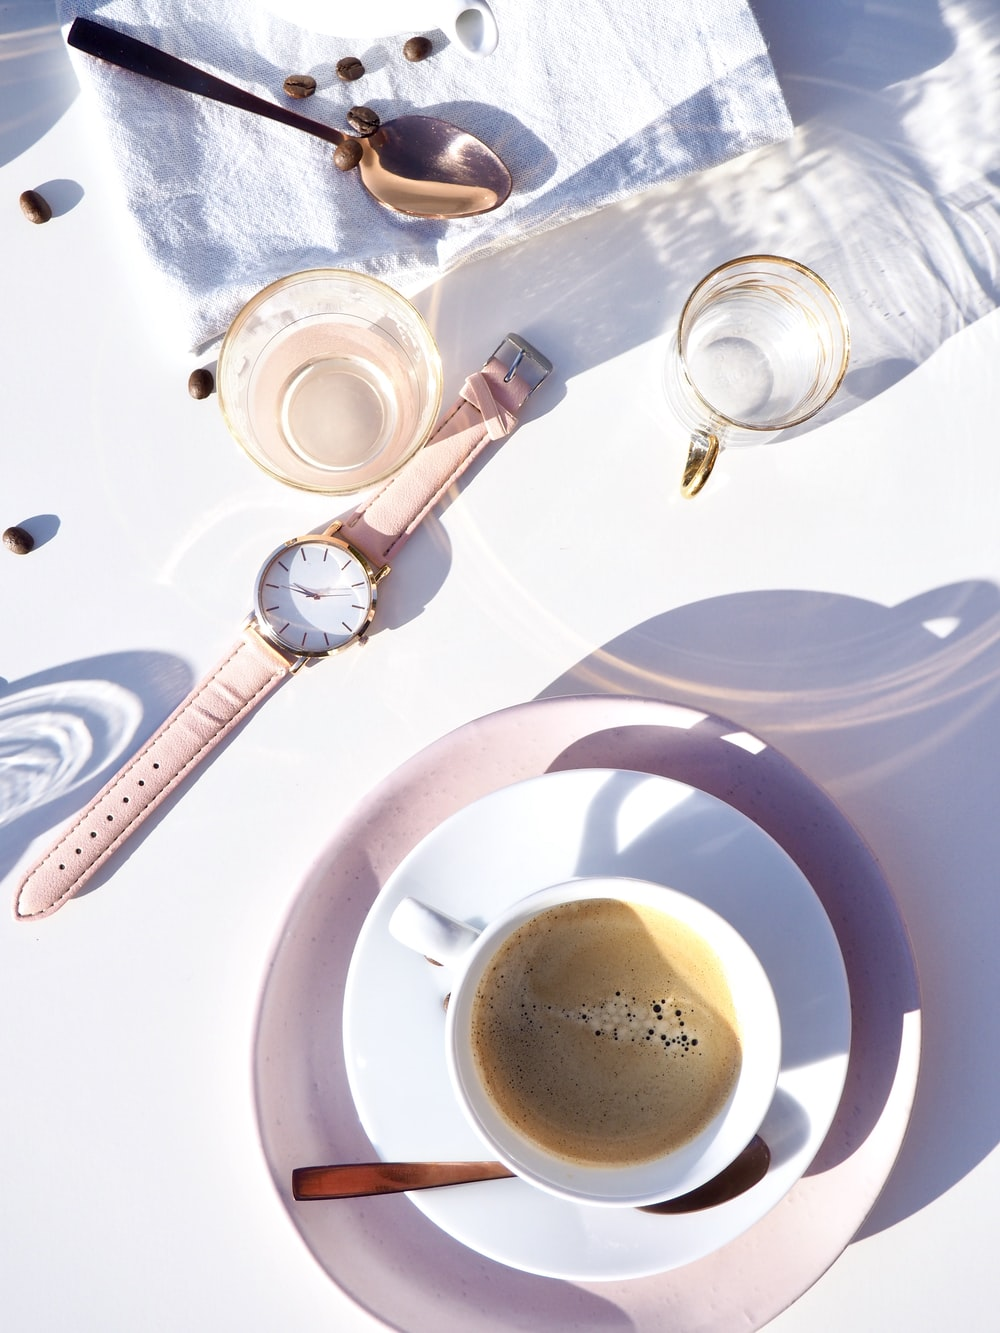 round gold-colored analog watch displaying 12:41 near cup of coffee